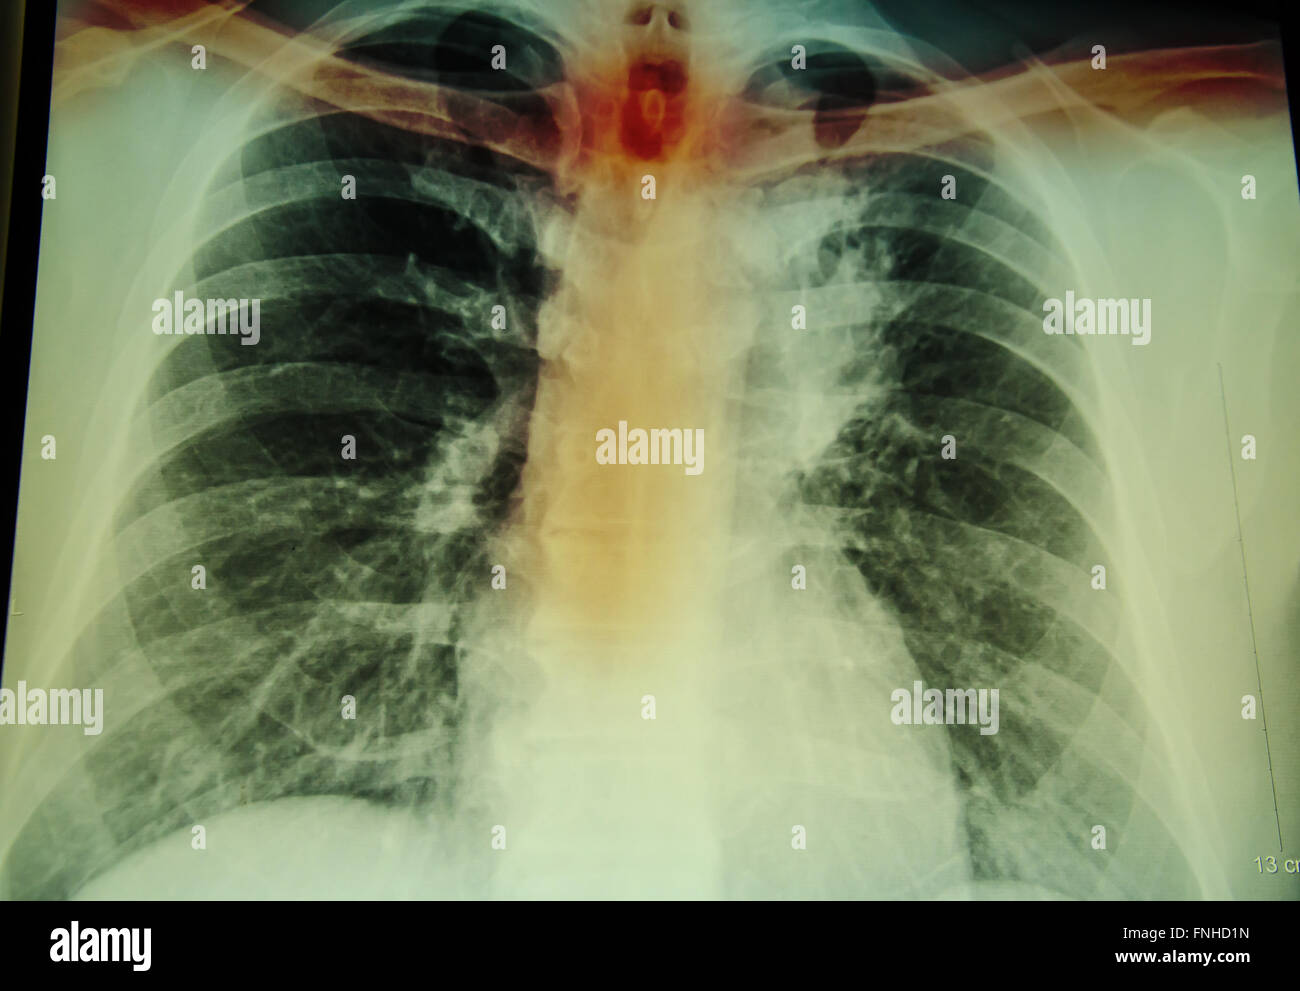 chest x-ray examination for diagnosis spine and cervical